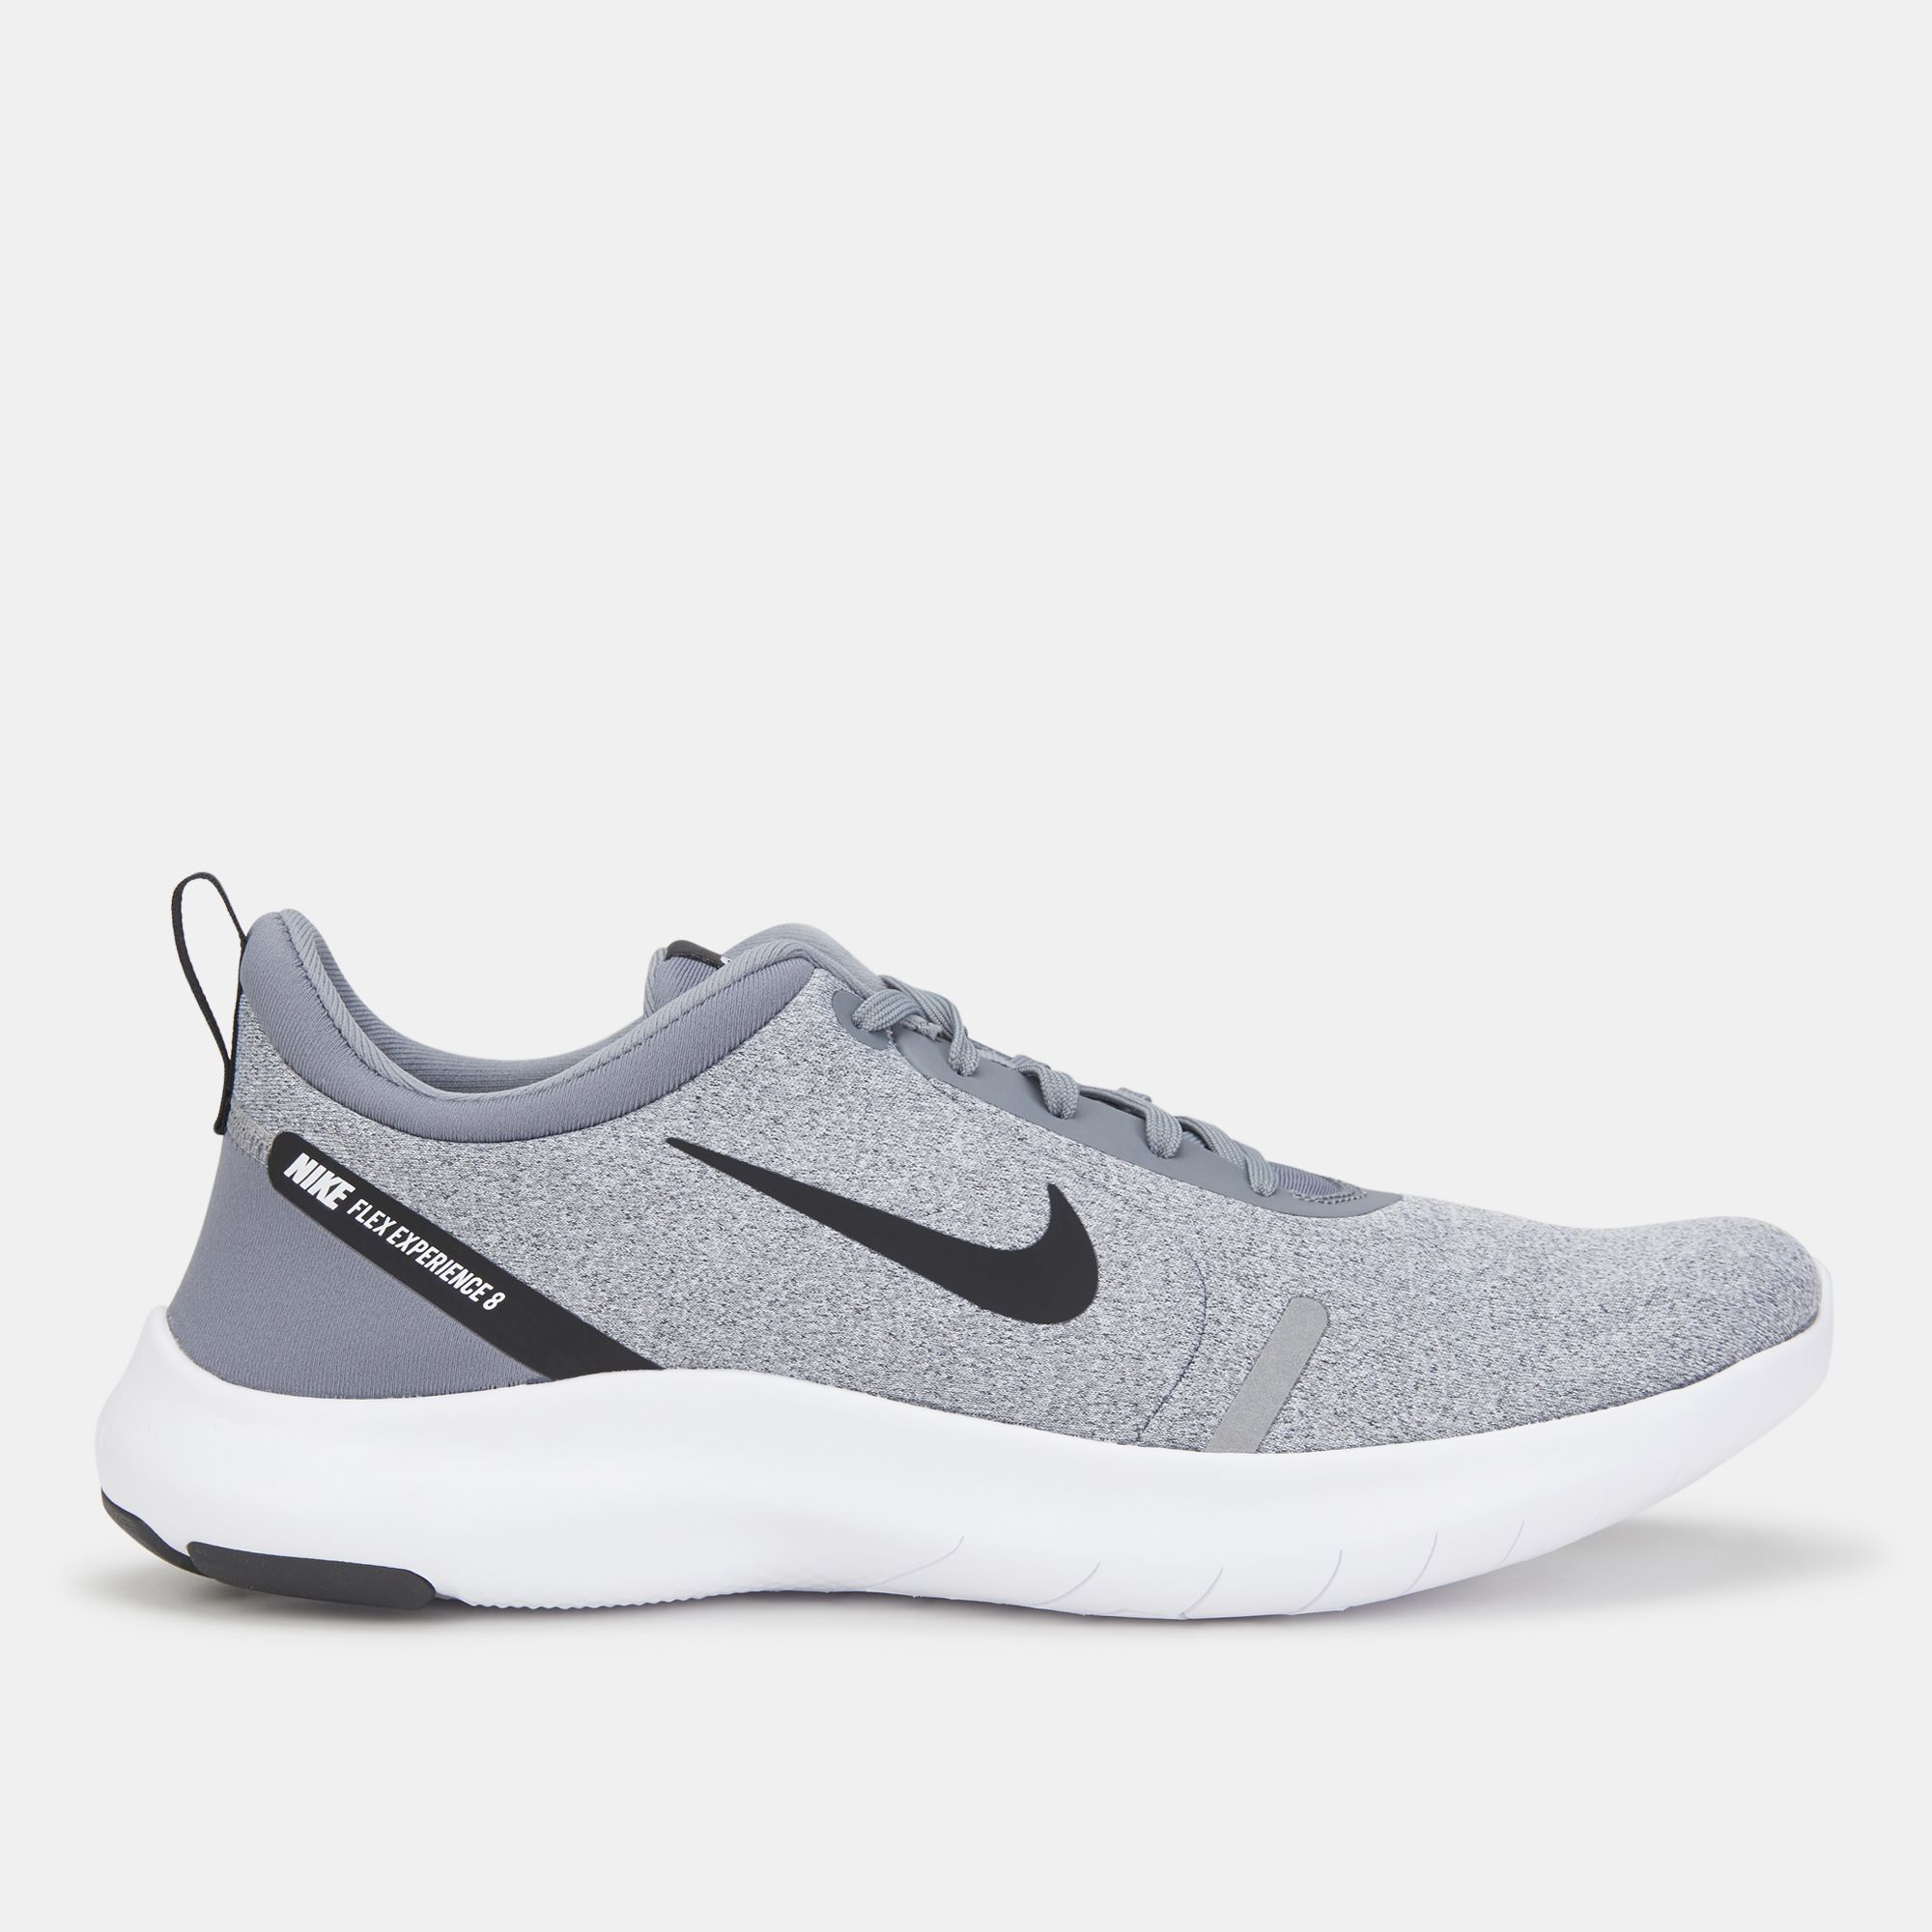 promo code 27e83 cf99b Nike Men s Flex Experience RN 8 Shoe   Shoes   Nike   Brands     SSS